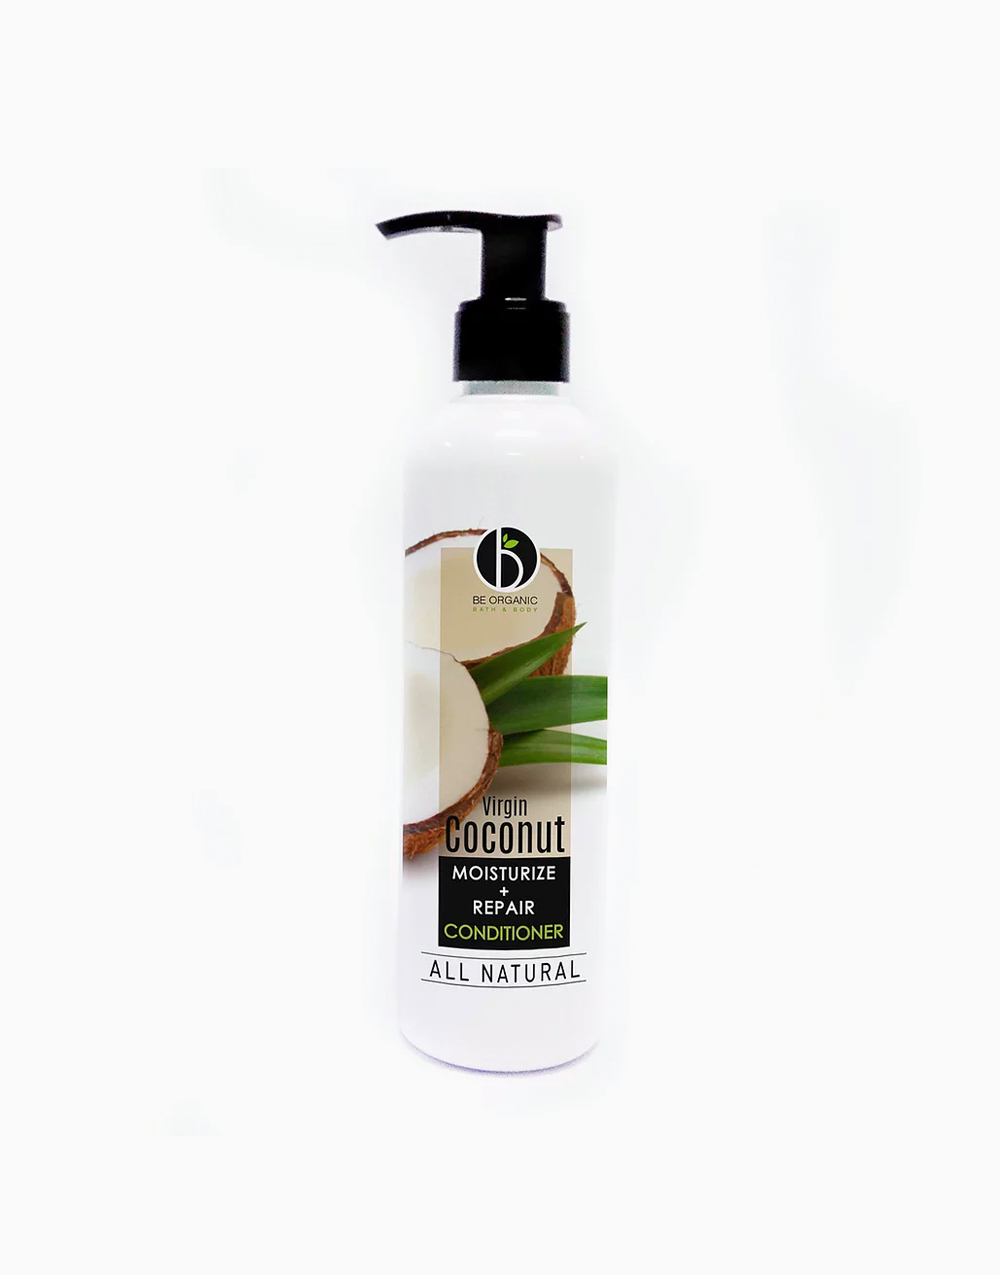 Virgin Coconut Sulfate-Free Conditioner by Be Organic Bath & Body